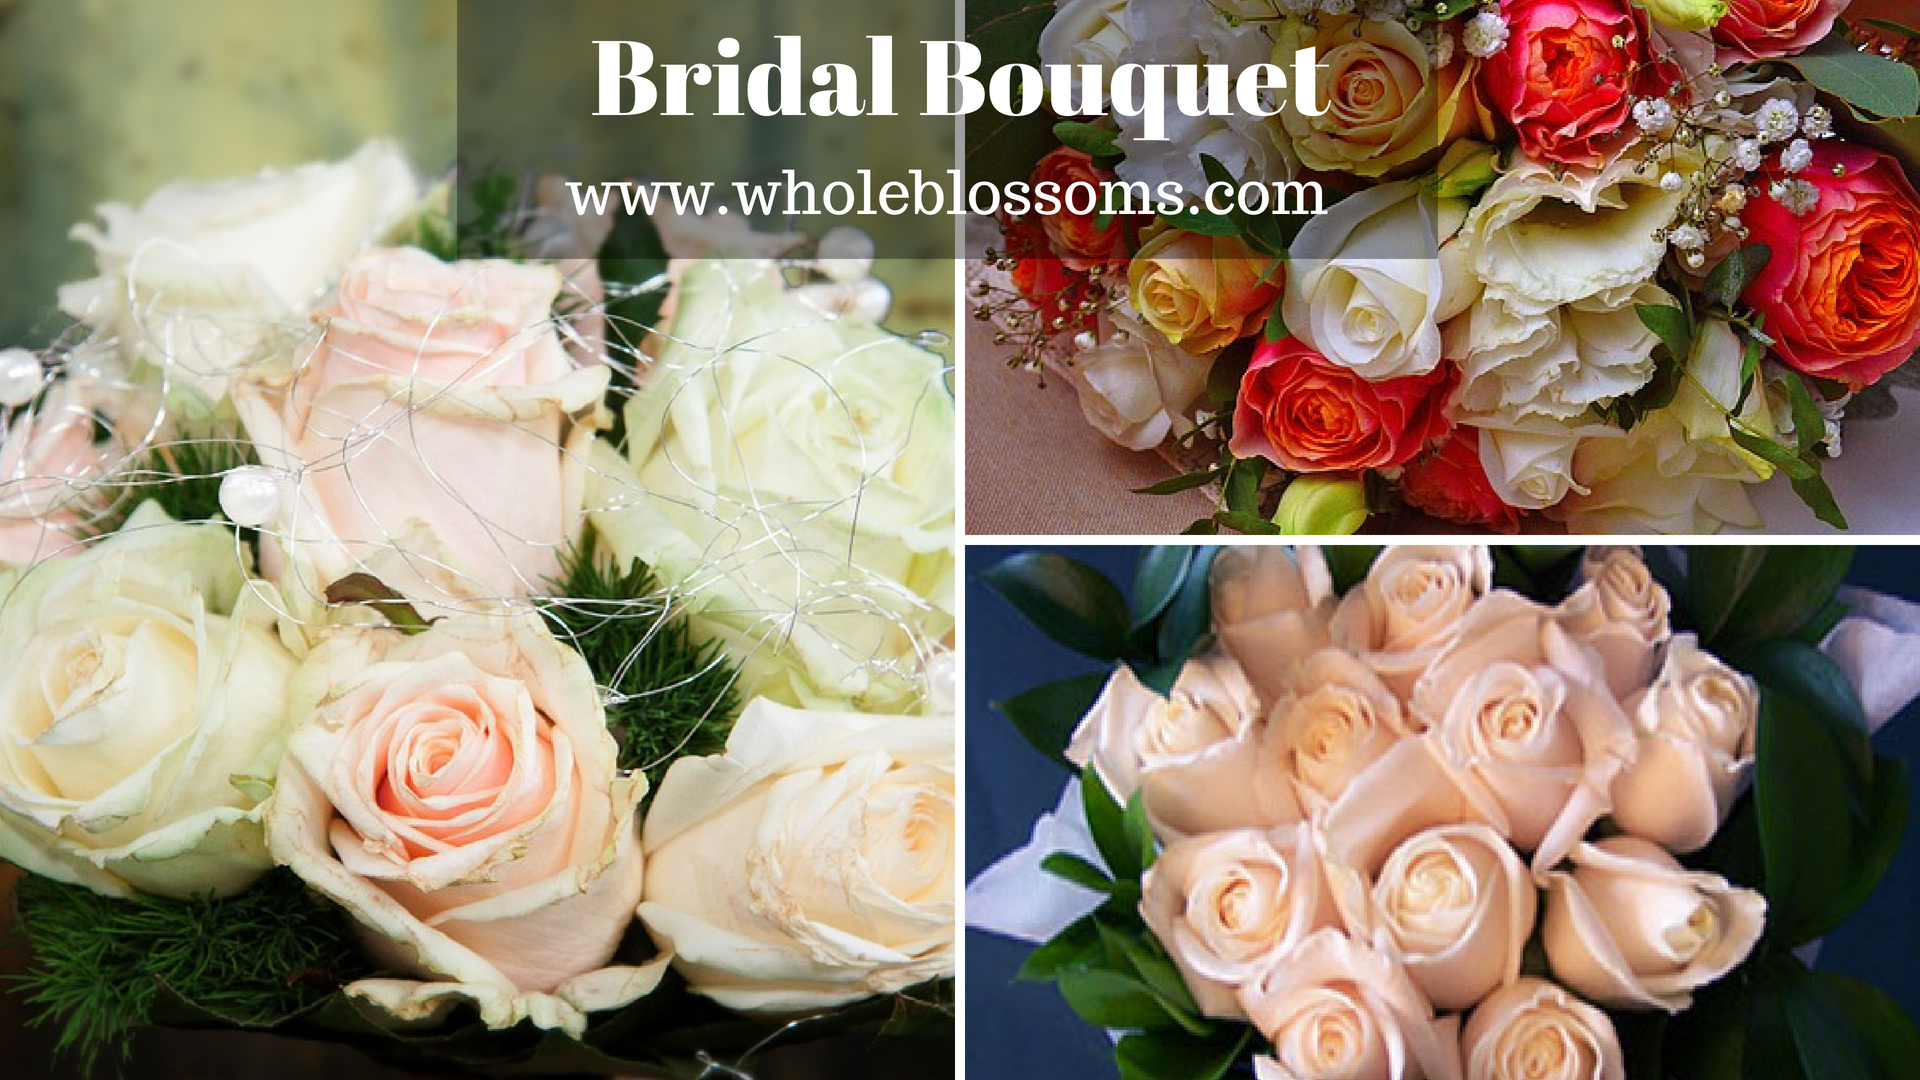 Buy Bridal Bouquet for Your Special Day